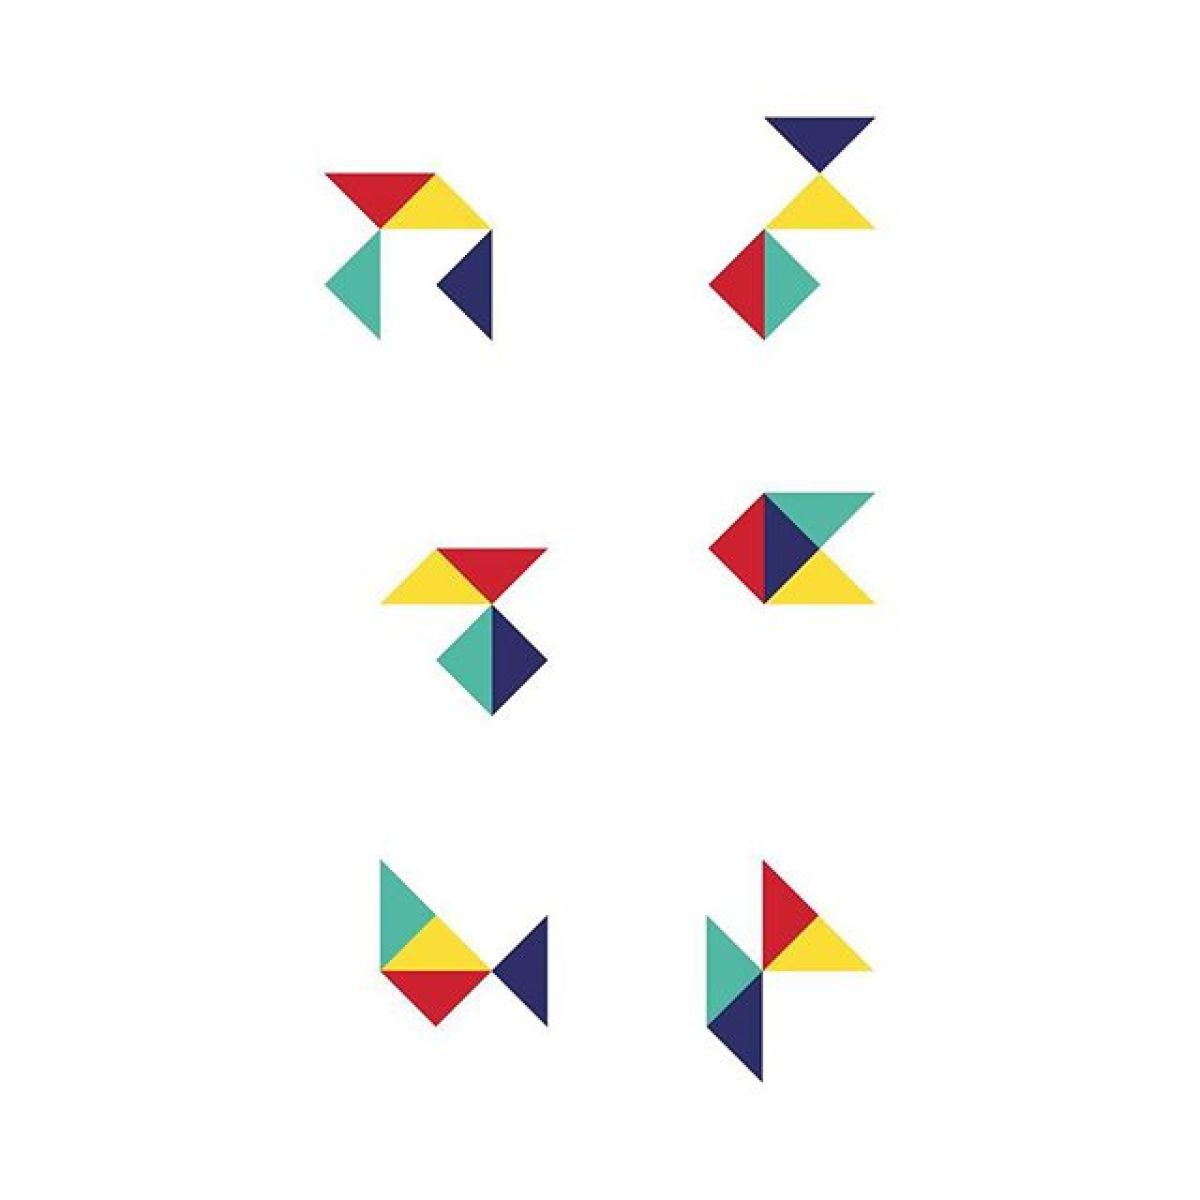 New work — SIROS #logo #brand #ident #product #productarchitecture #colours #harleyquinn #tangram #design #graphicdesign